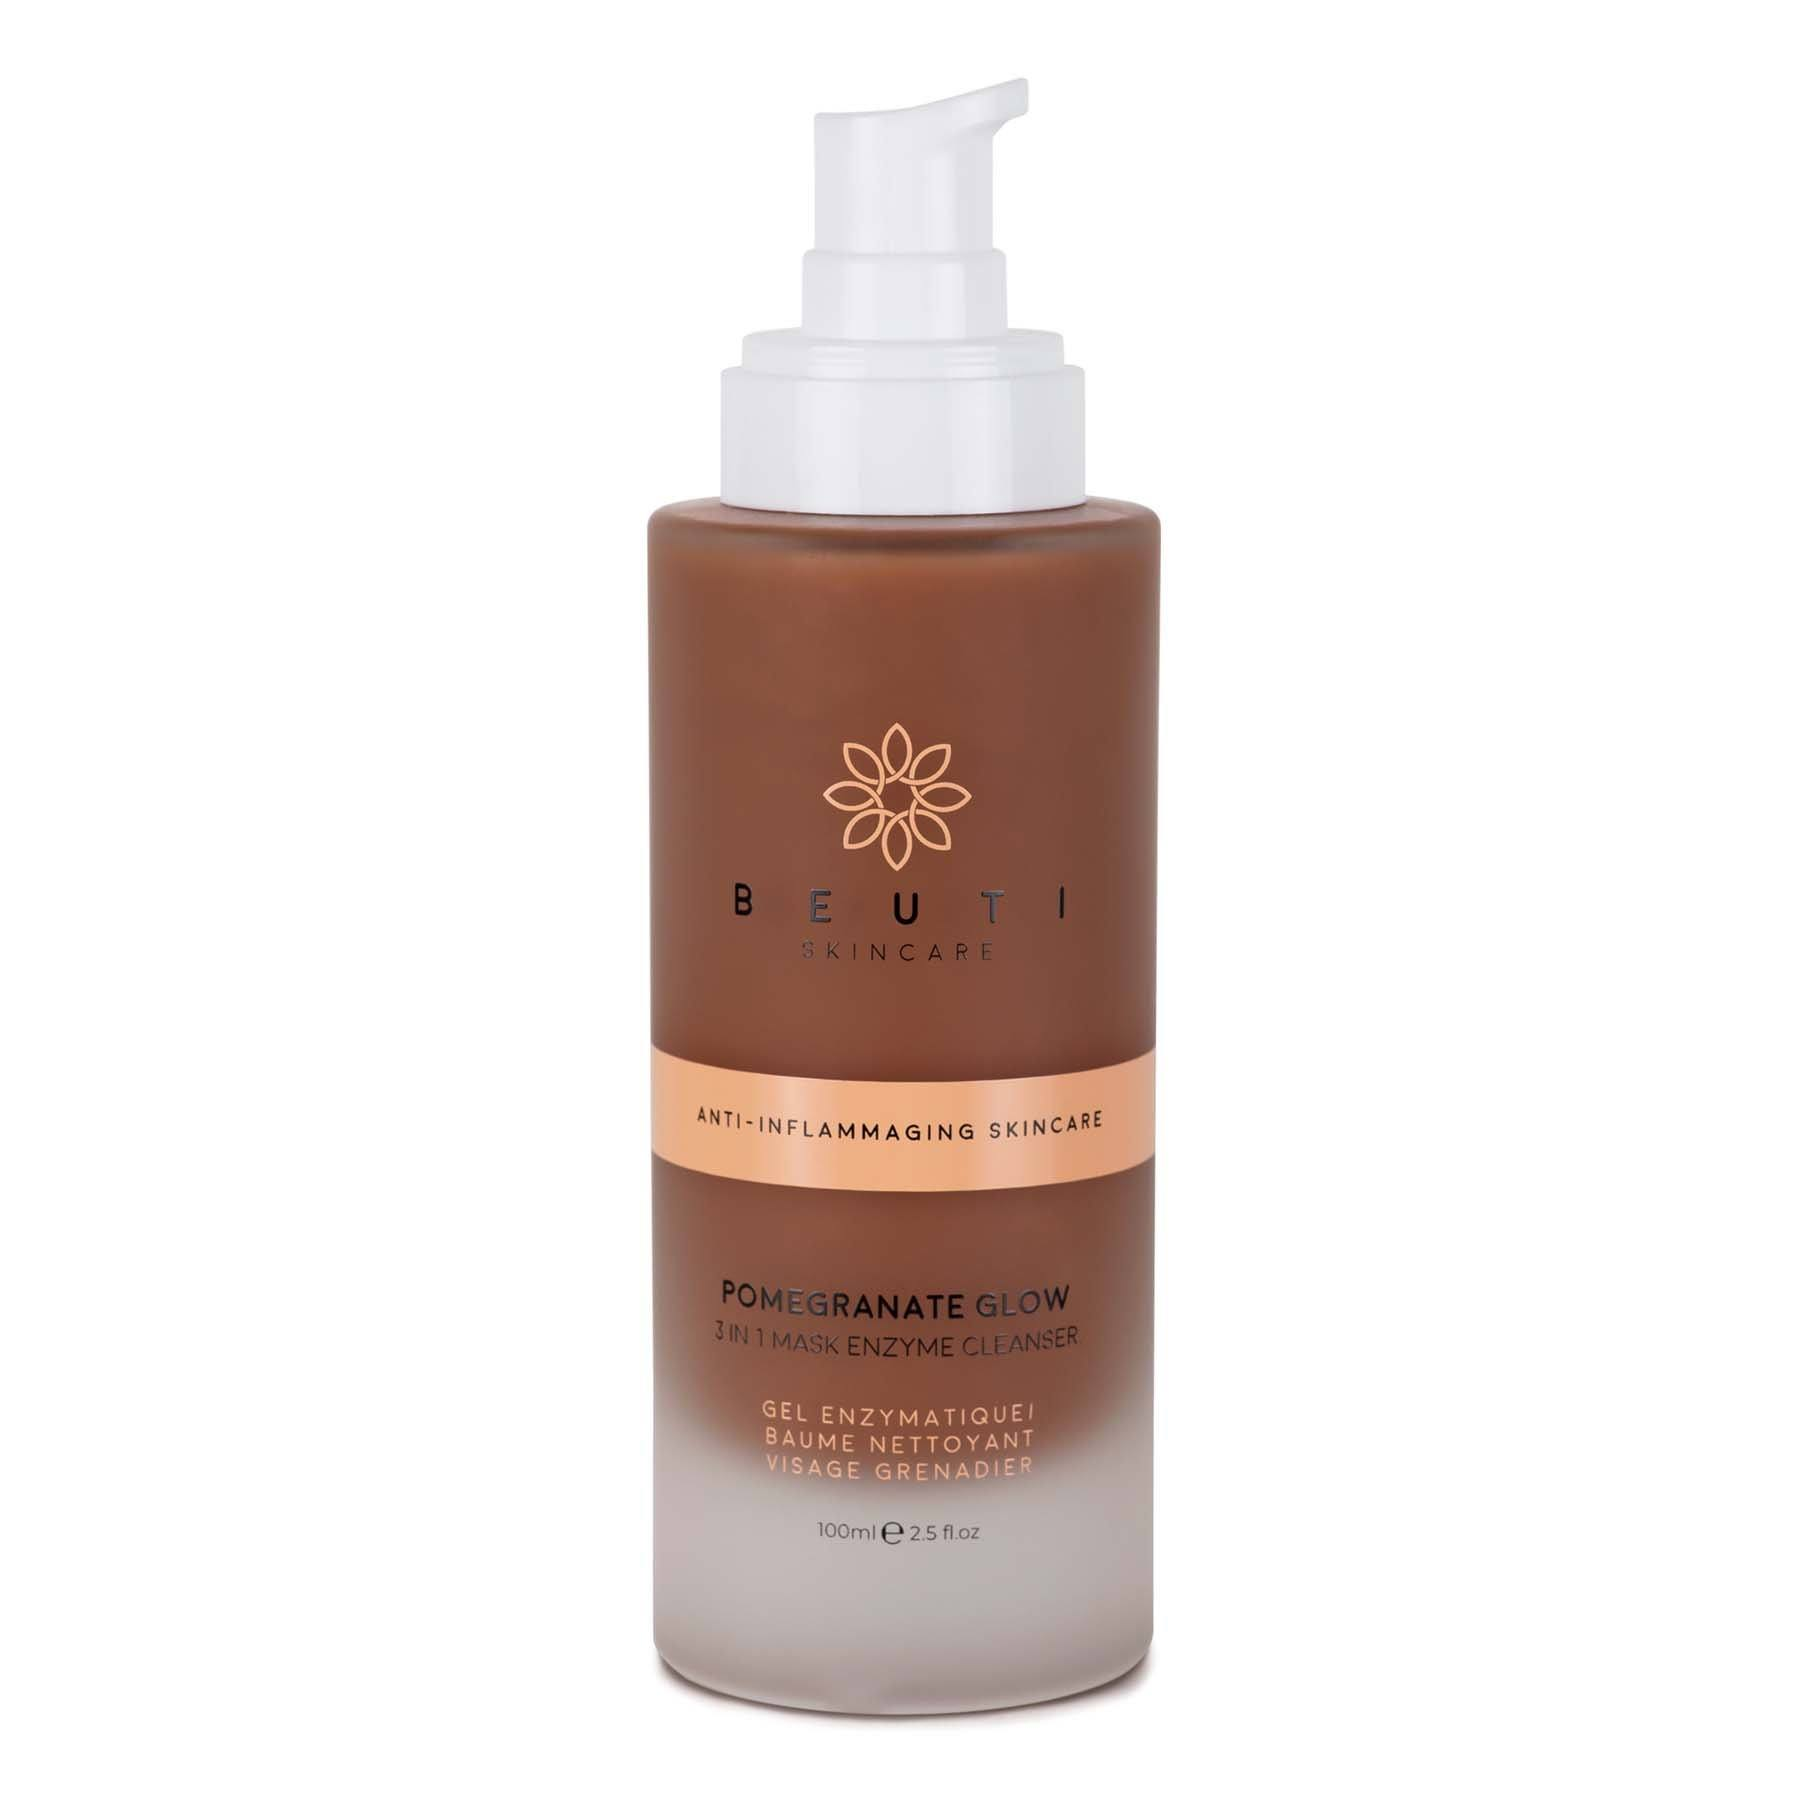 Pomegranate 3 in 1 Enzyme Cleanser